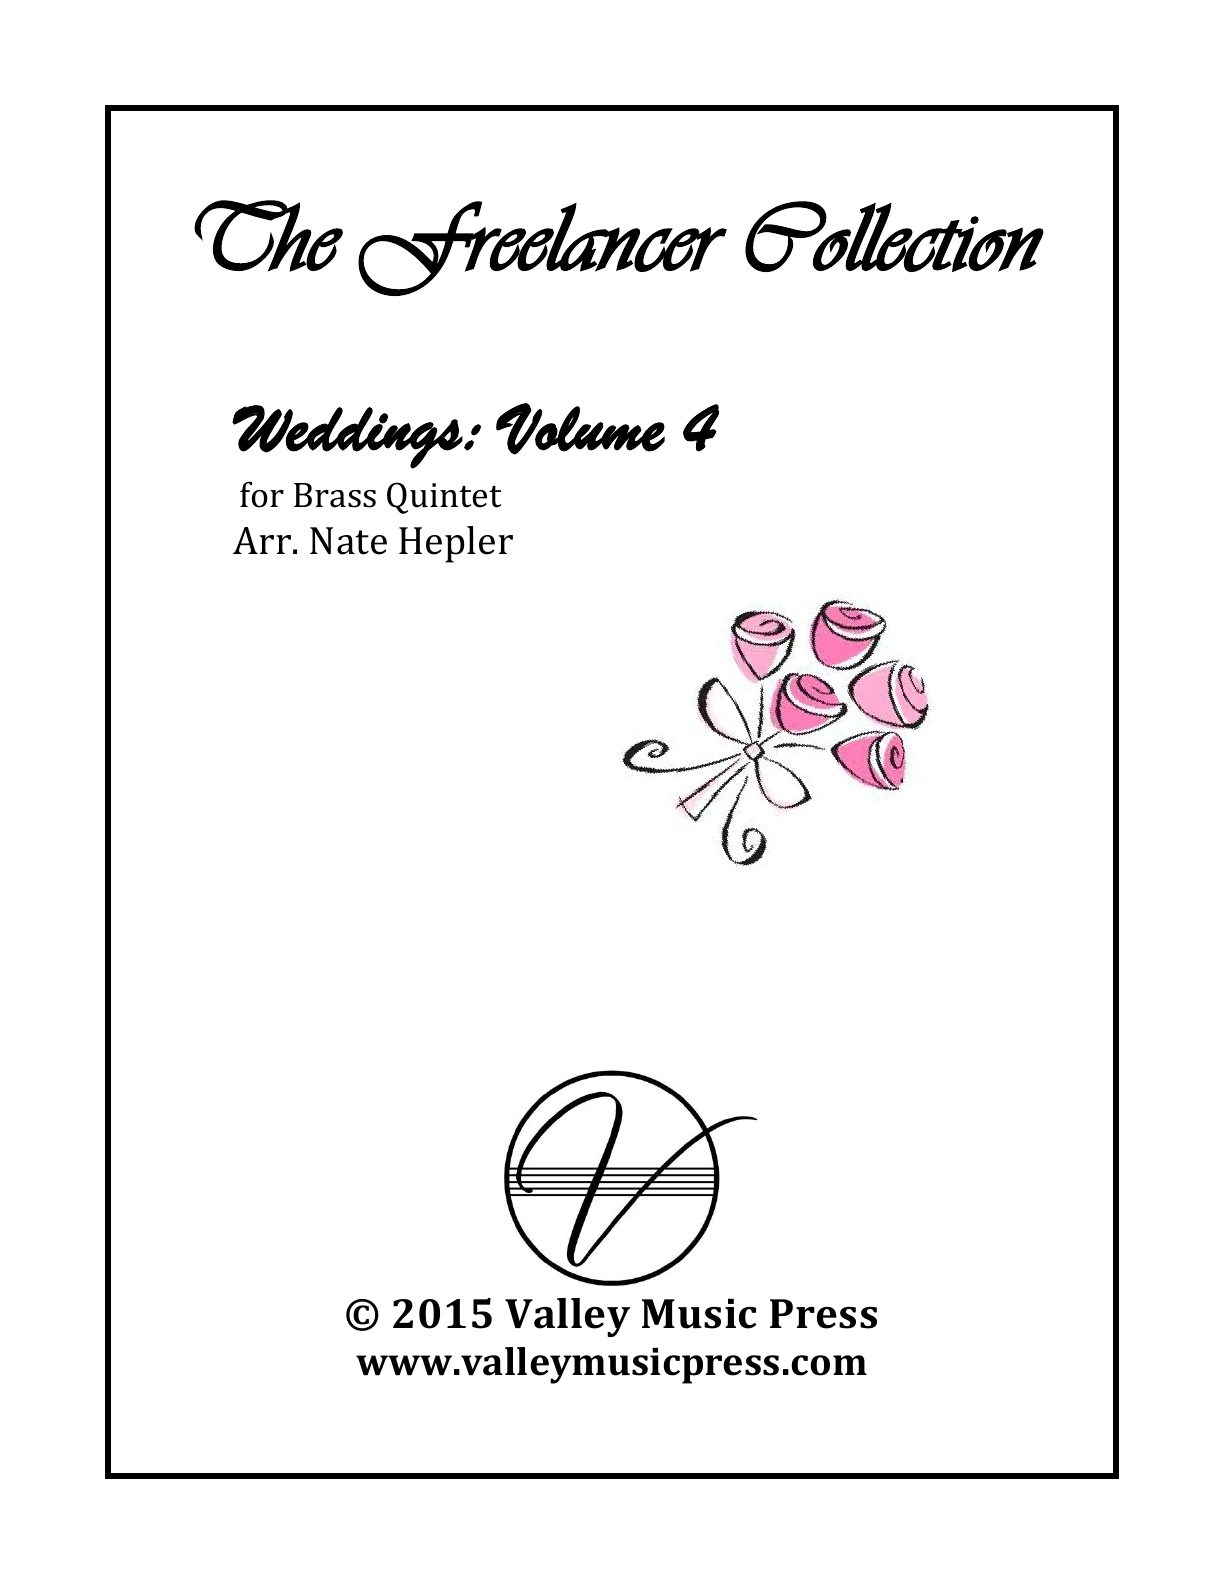 Hepler - The Freelancer Collection - Weddings: Vol. 4 (BQ)